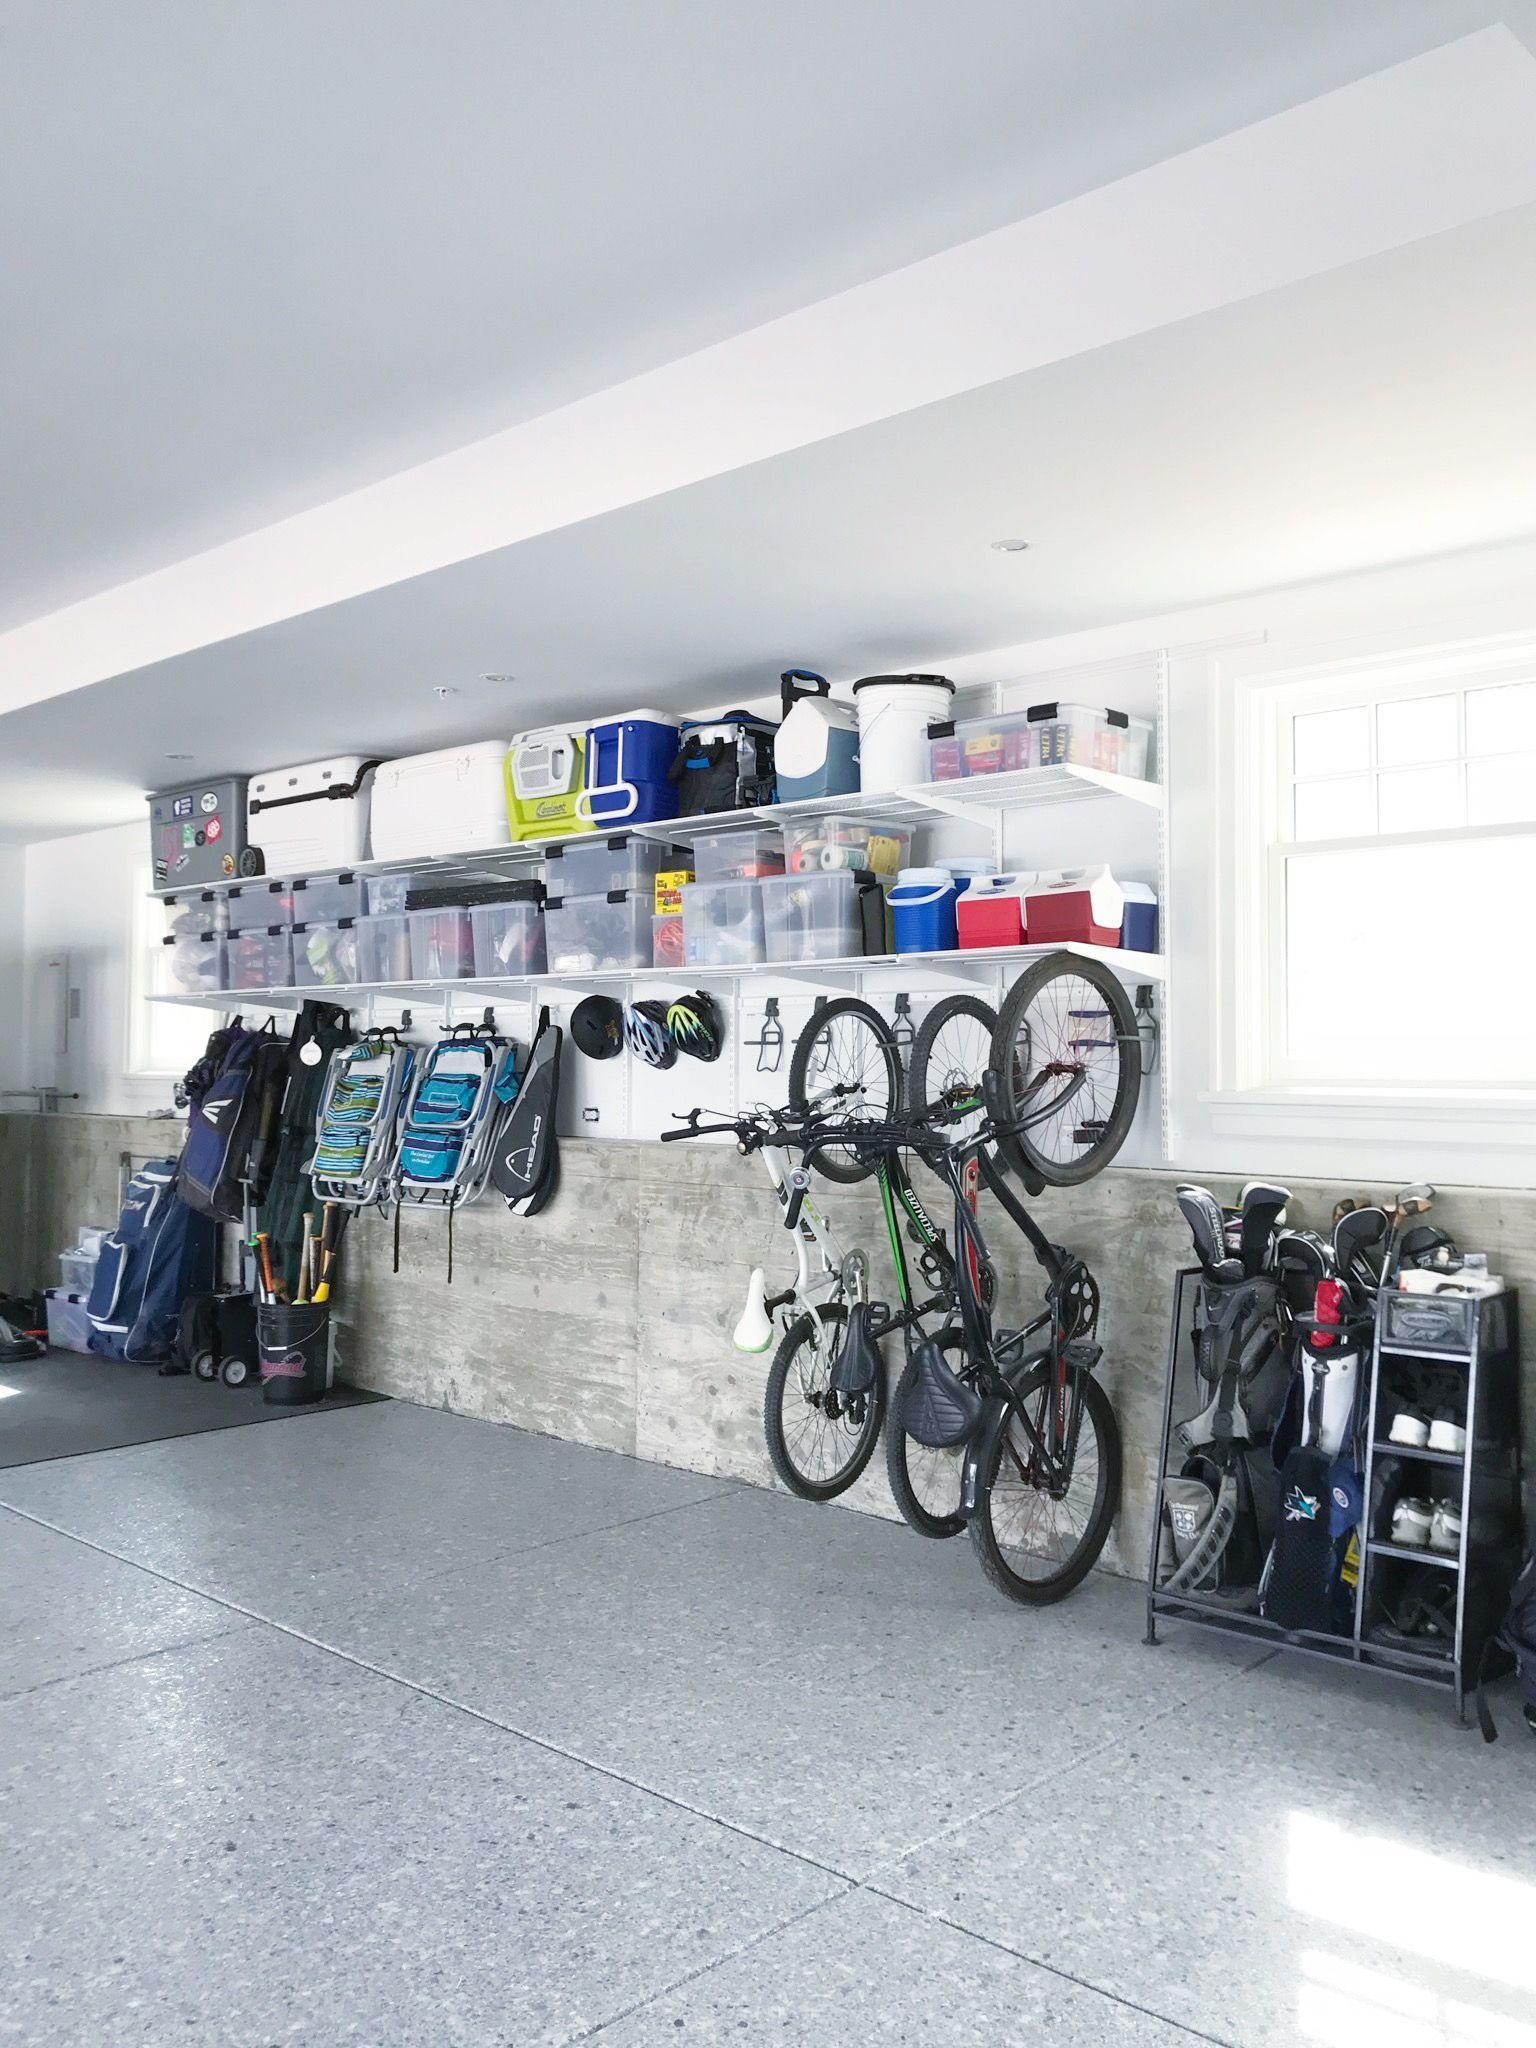 This Is The Most Beautiful Garage Light Bright New Shelving Wide Open And To Be In 2020 Garage Organization Garage Storage Organization Garage Organization Tips